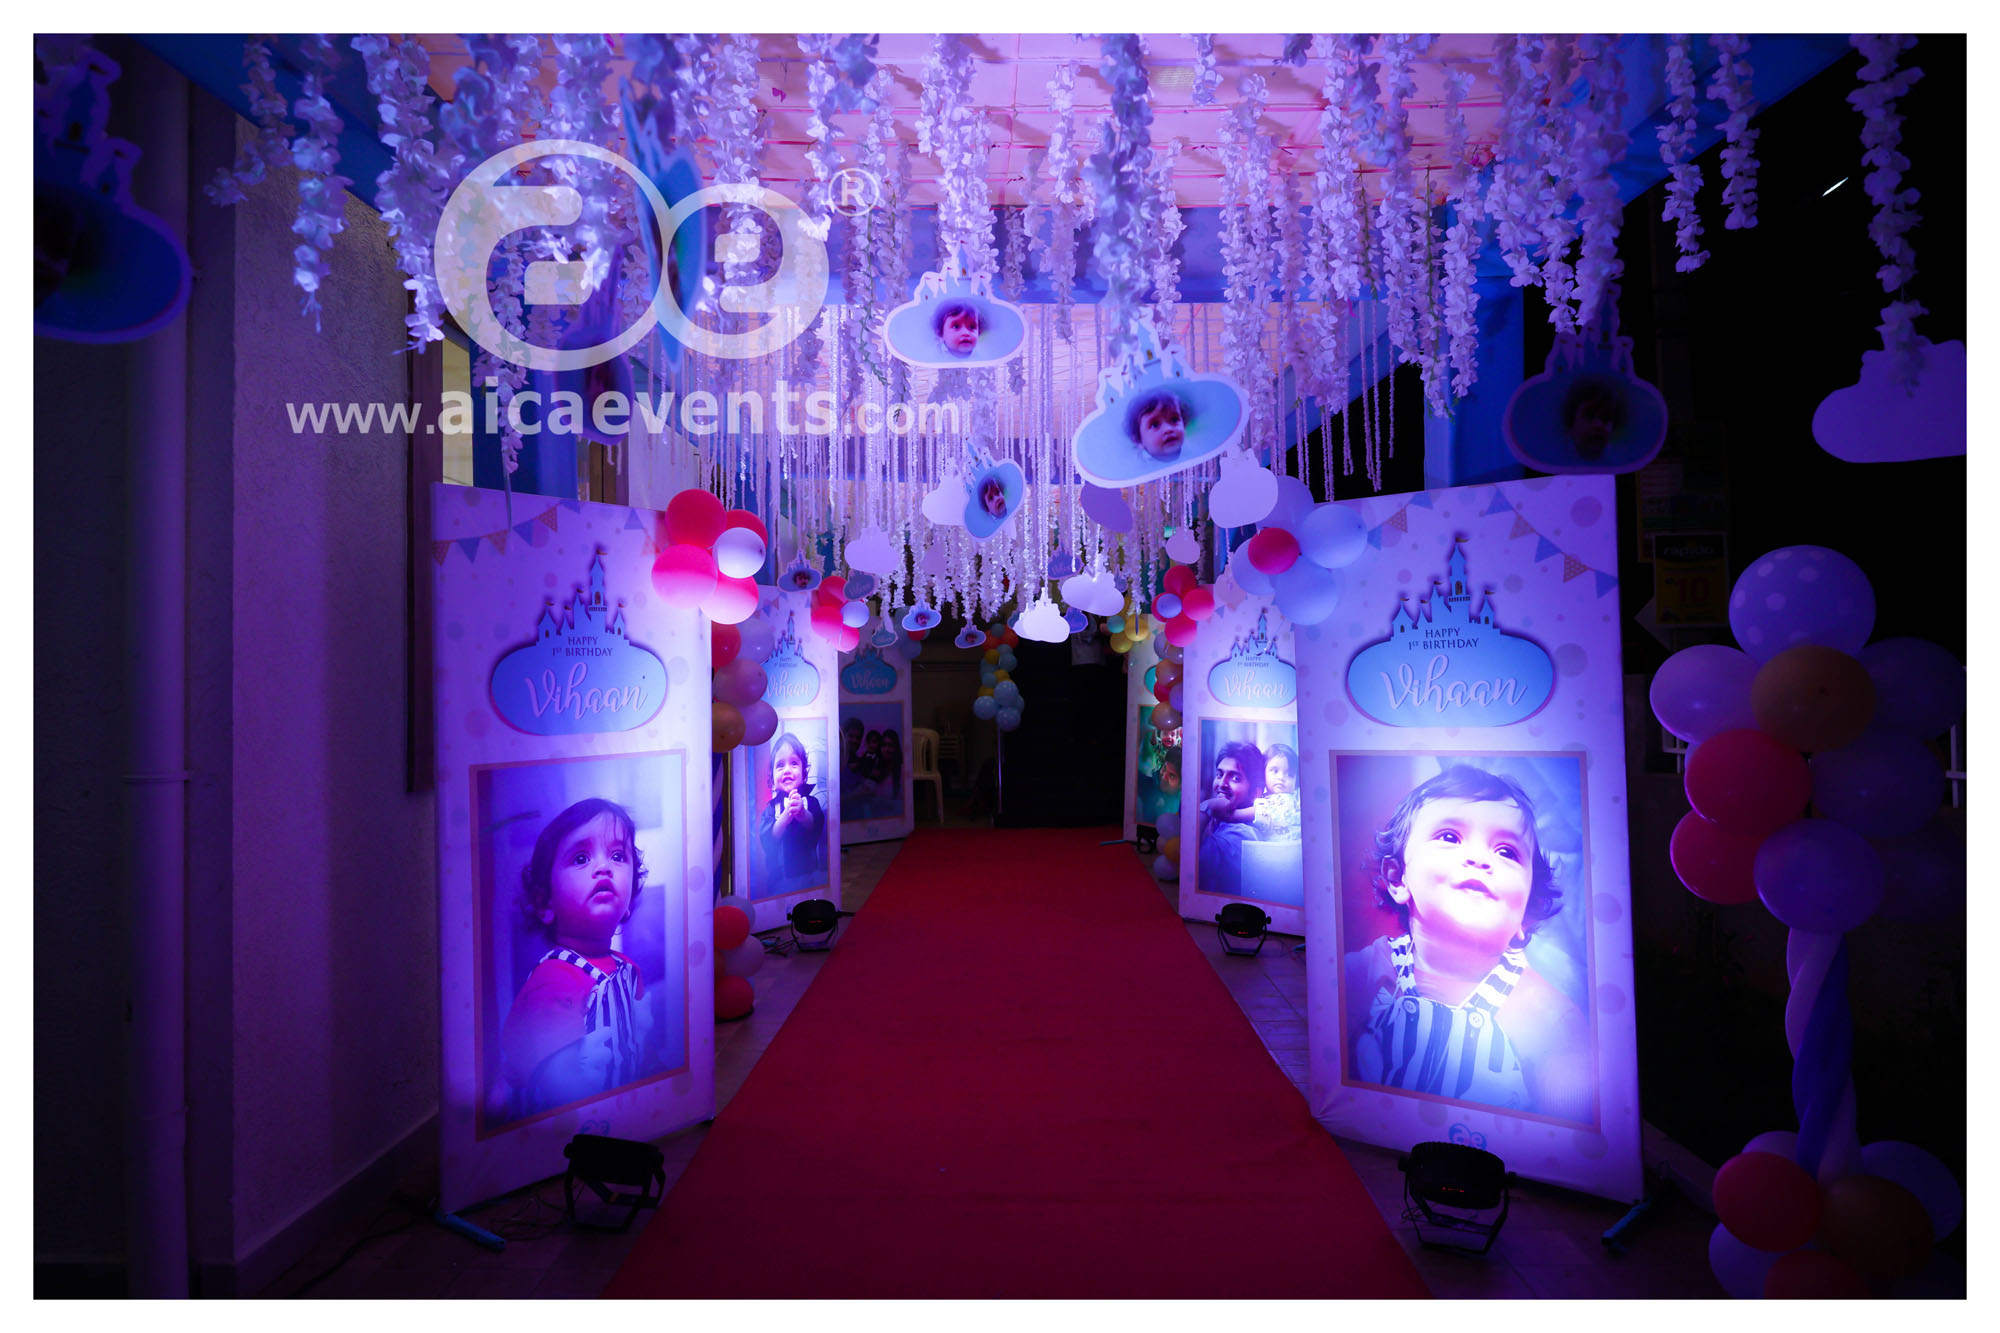 Little prince_theme_with_carousel_aicaevents_contact_916984999